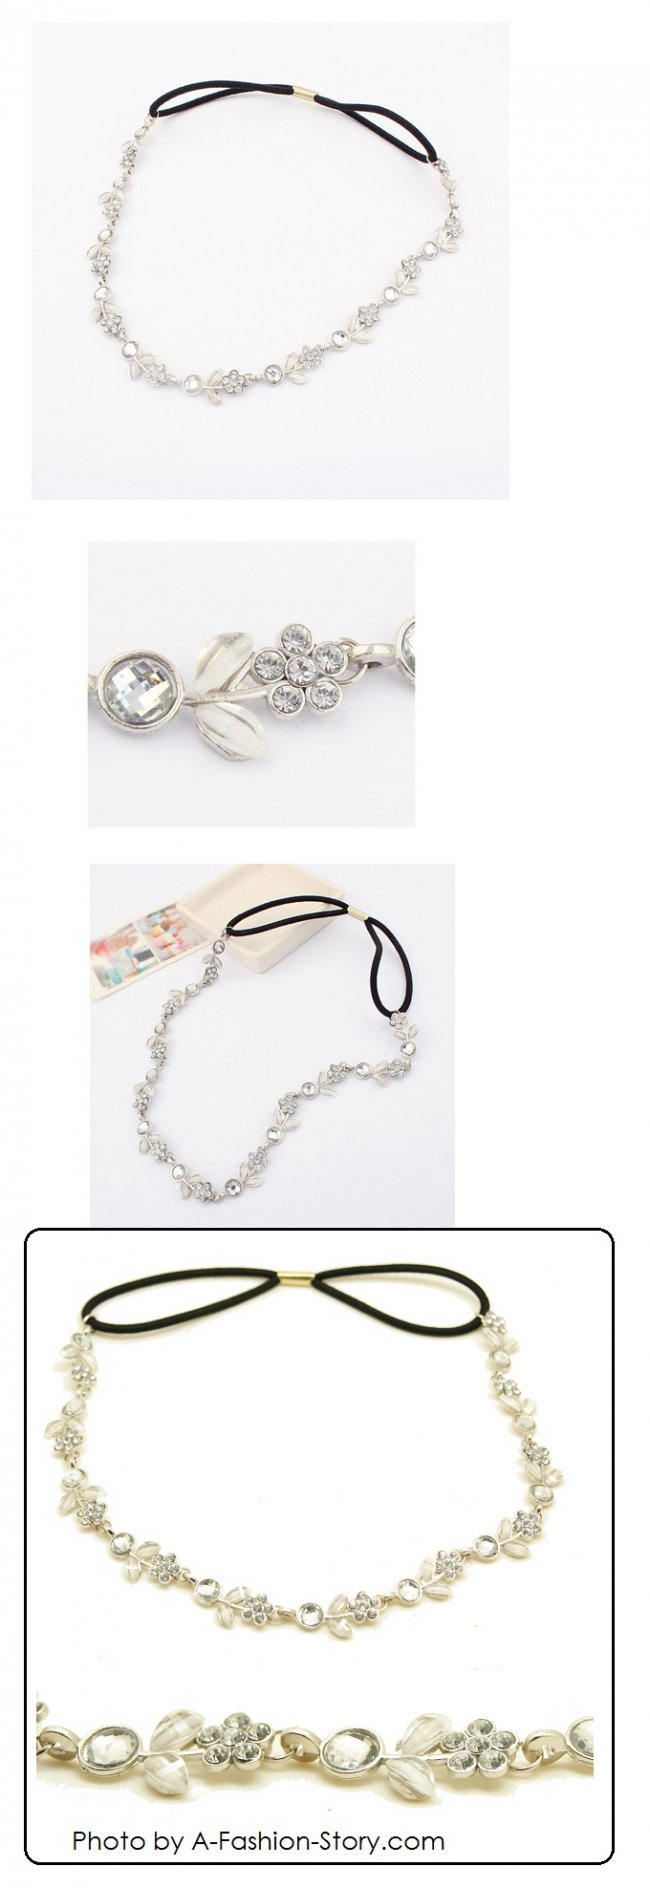 A-Q-8060 P96389 Flower bead headband hair accessories malaysia